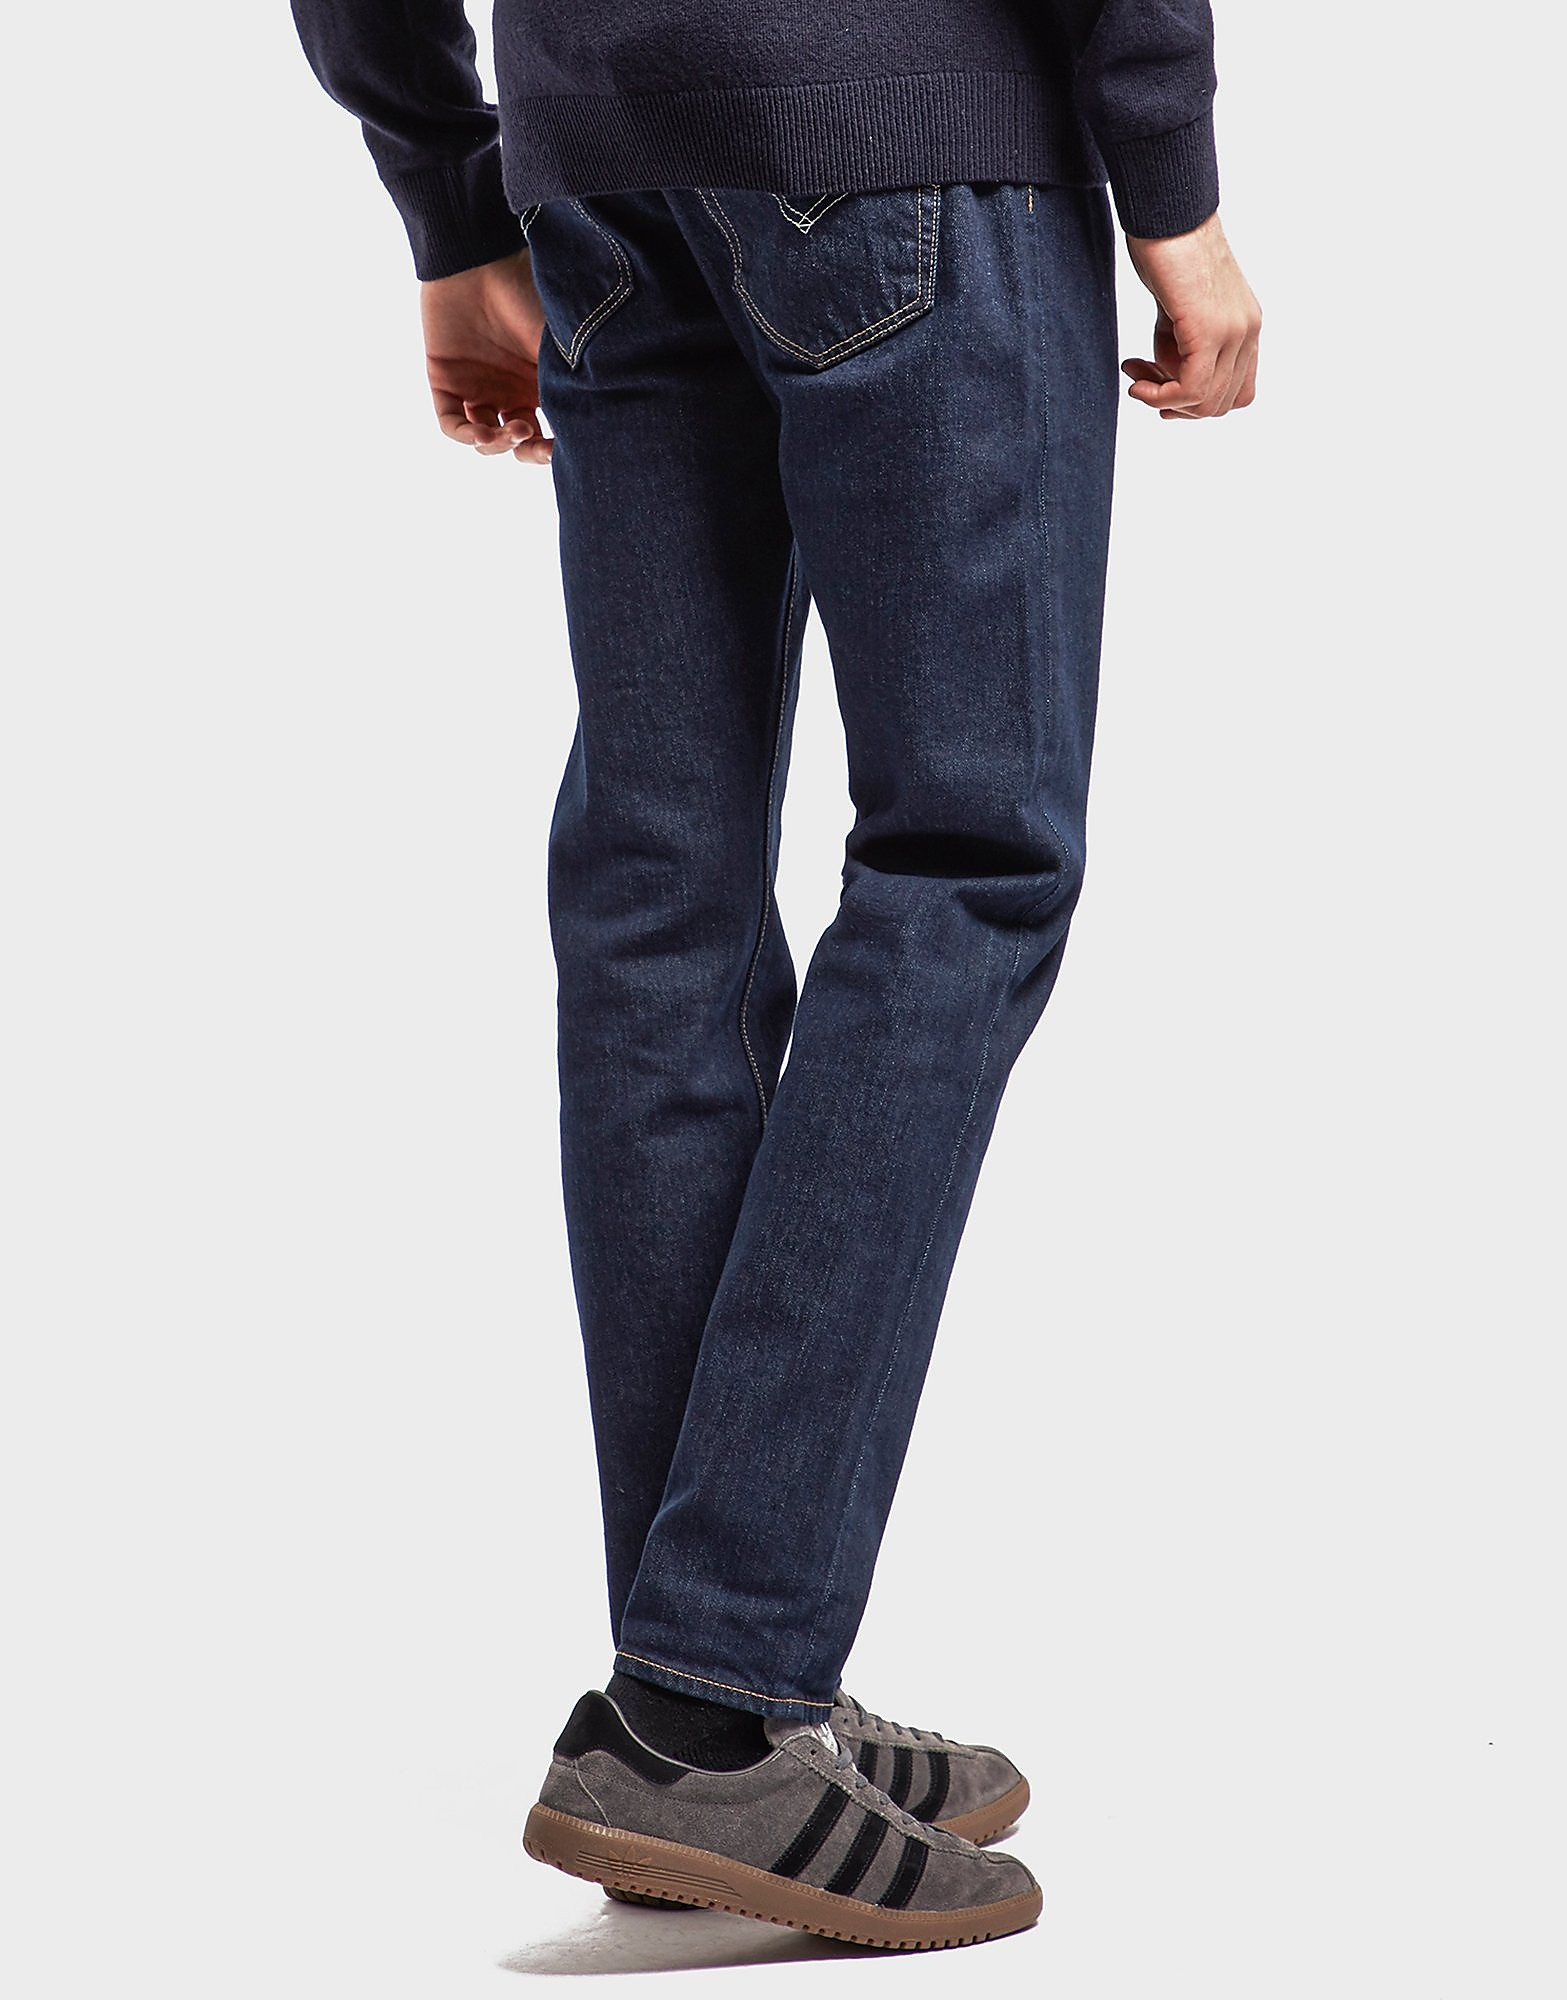 Levis 512 Taper Chainrinse Jeans